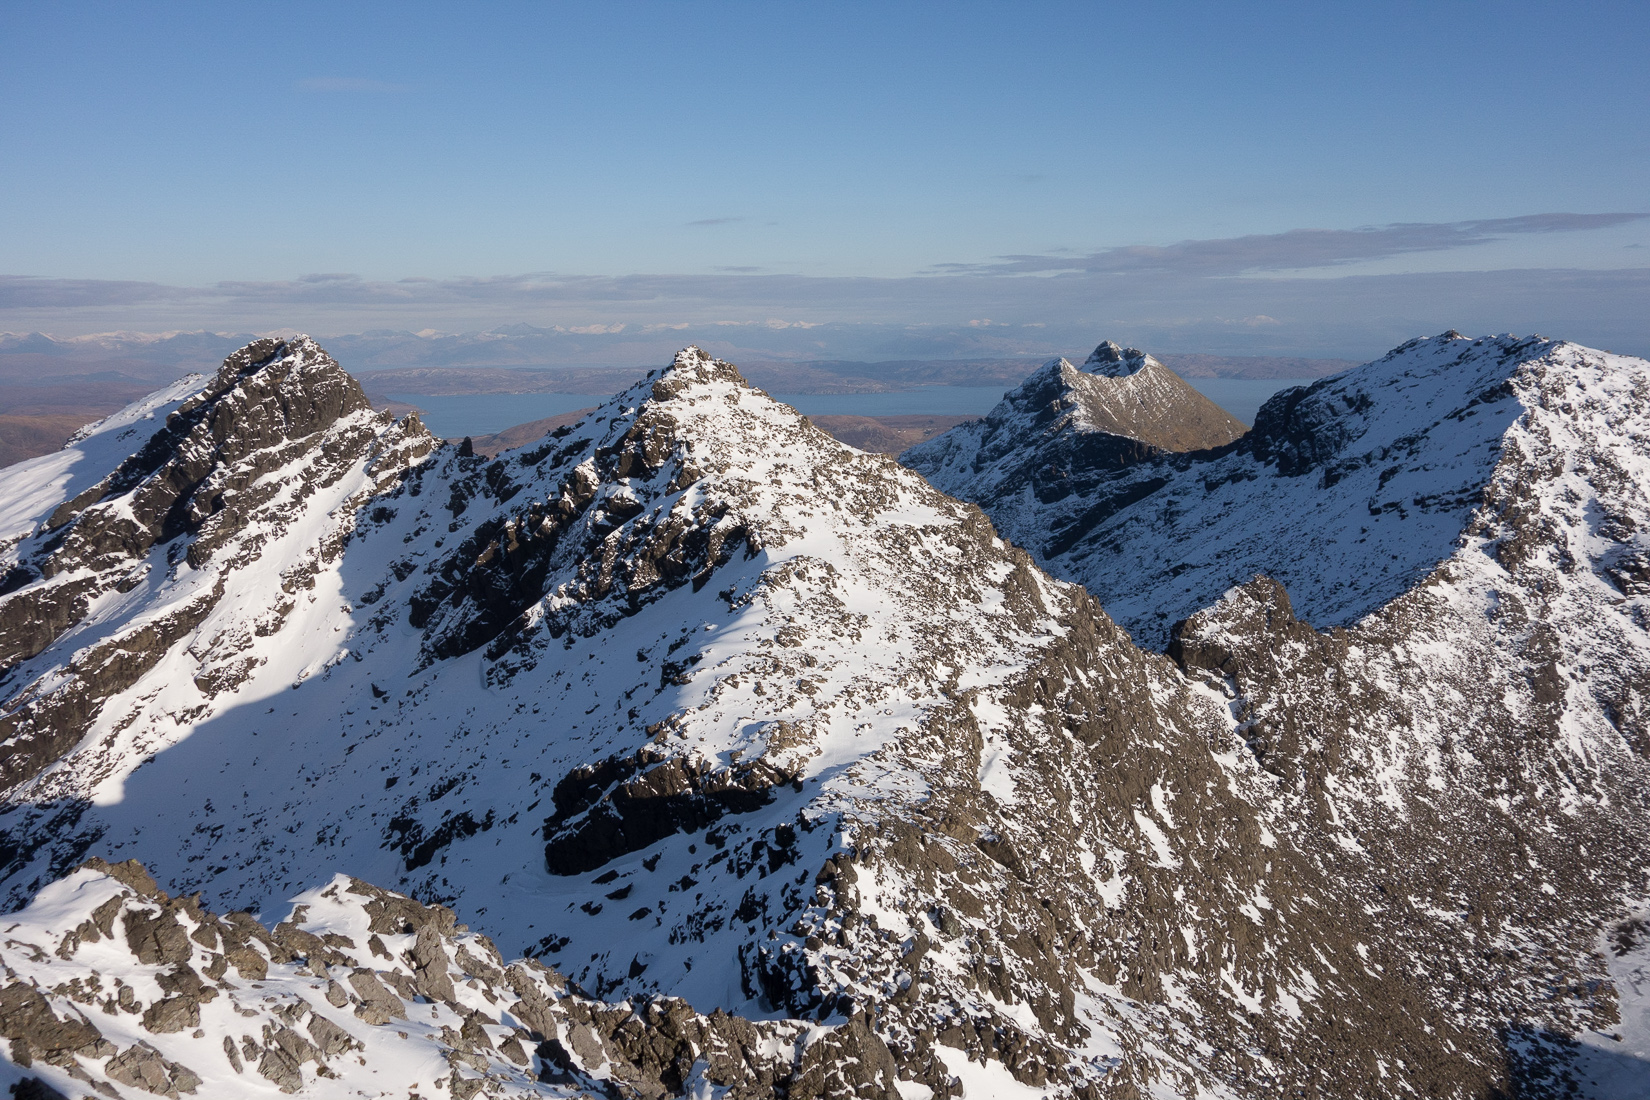 View from the summit of Sgurr Alasdair